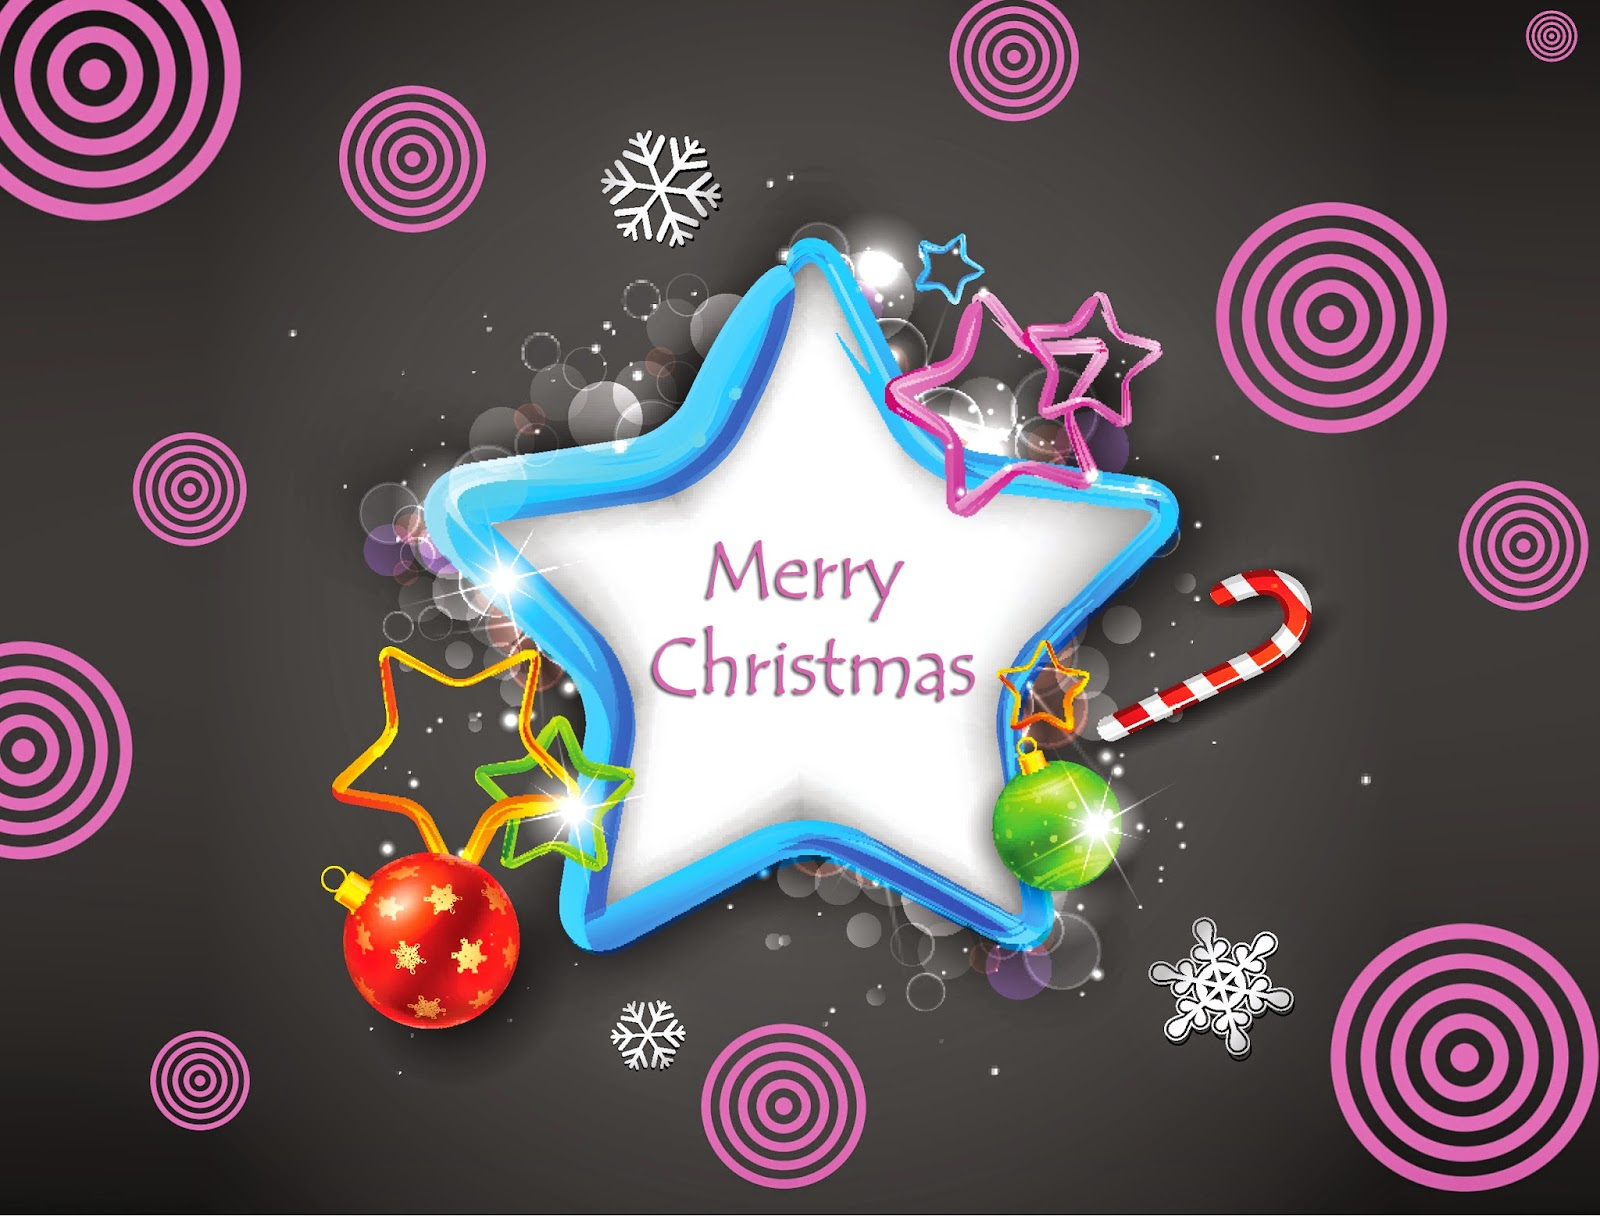 Merry-Christmas-wishes-text-printable-vector-graphics-template-image-HD-printable.jpg